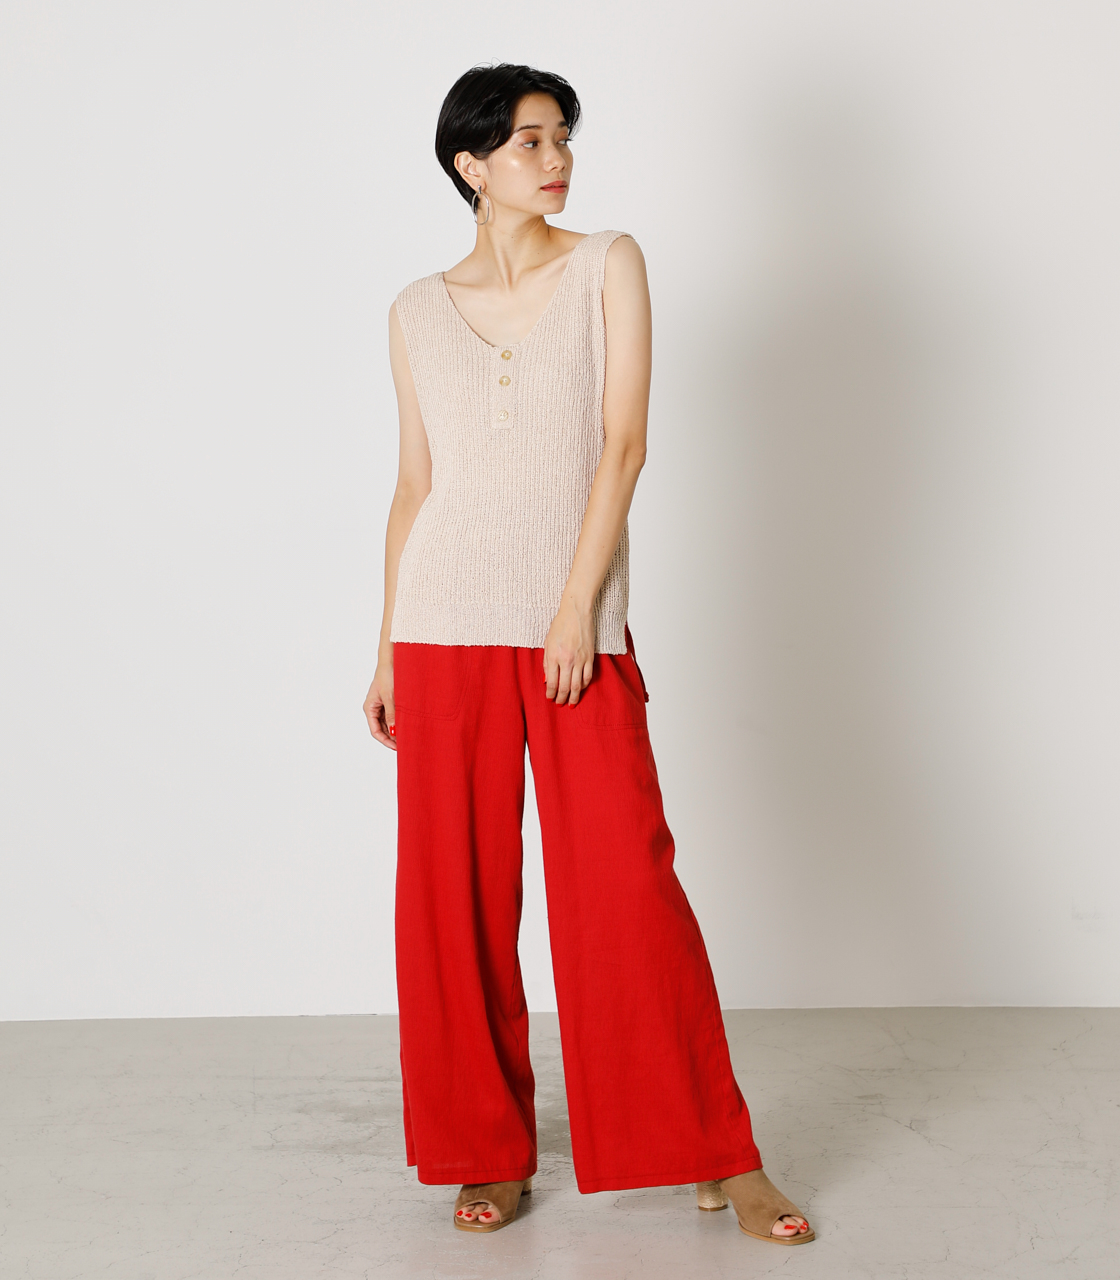 LINEN TOUCH LOOSE PANTS/リネンタッチルーズパンツ 詳細画像 RED 3